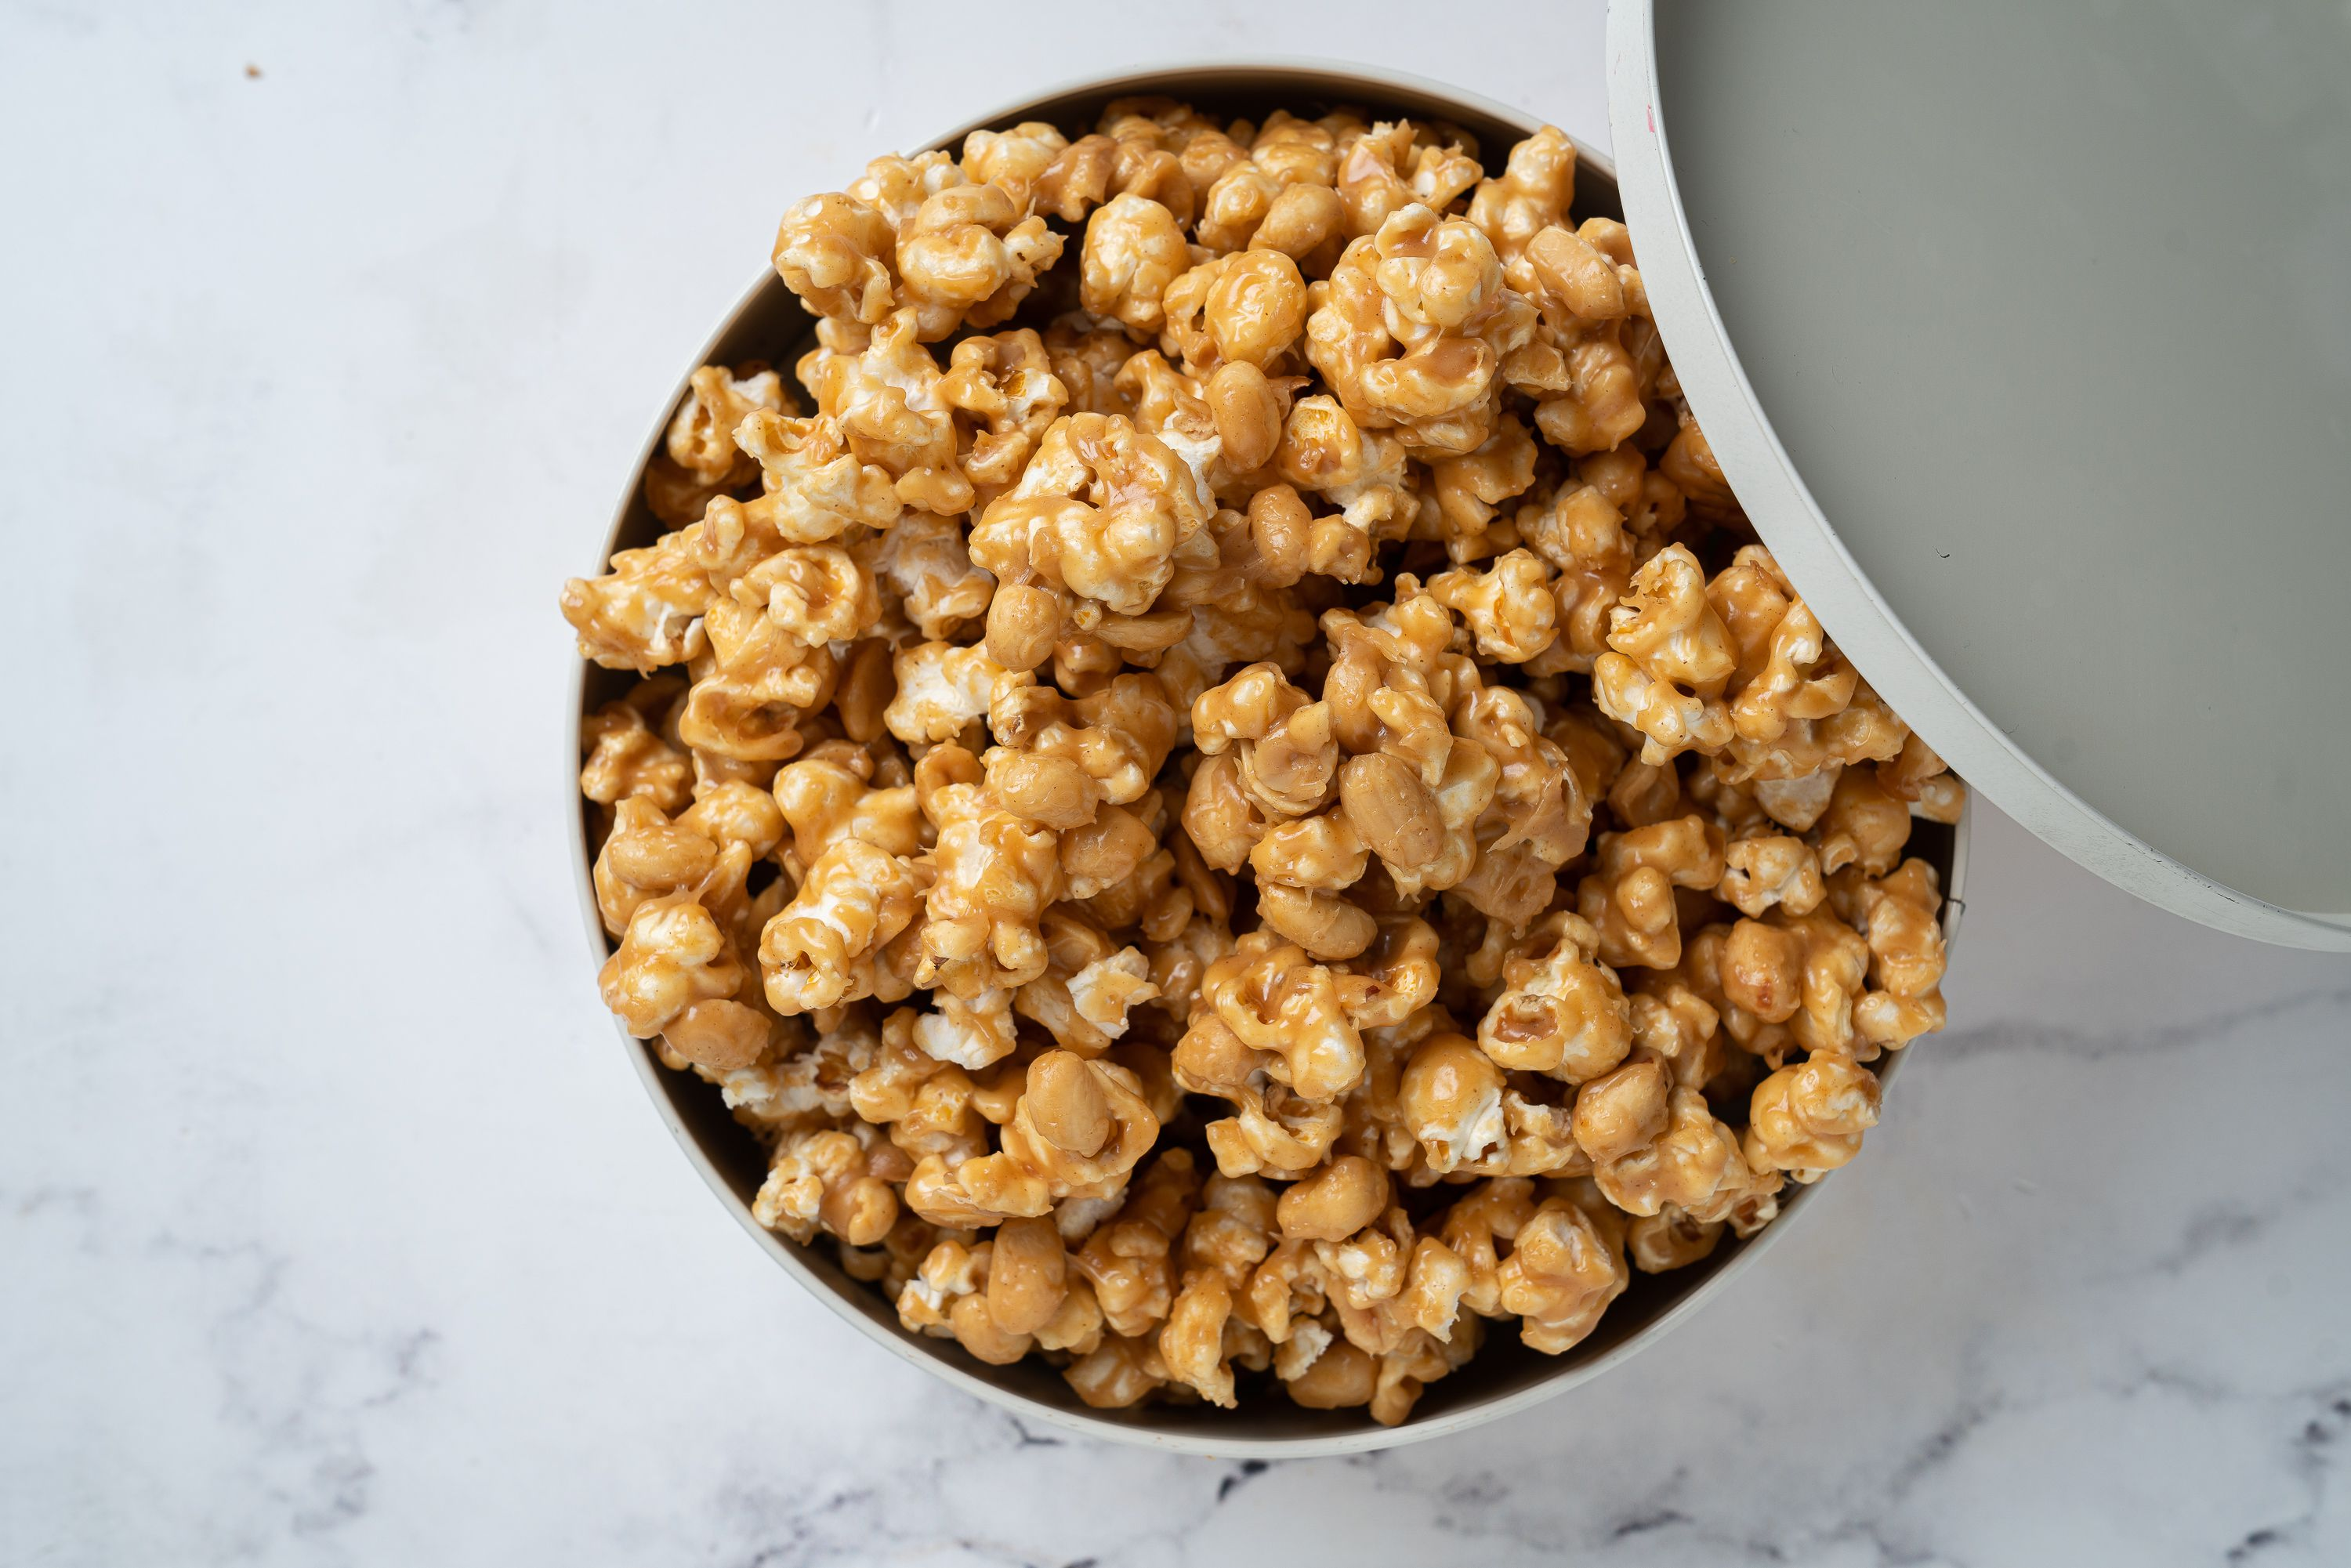 Peanut Butter Popcorn Is the Perfect Sweet and Salty Movie Night Snack